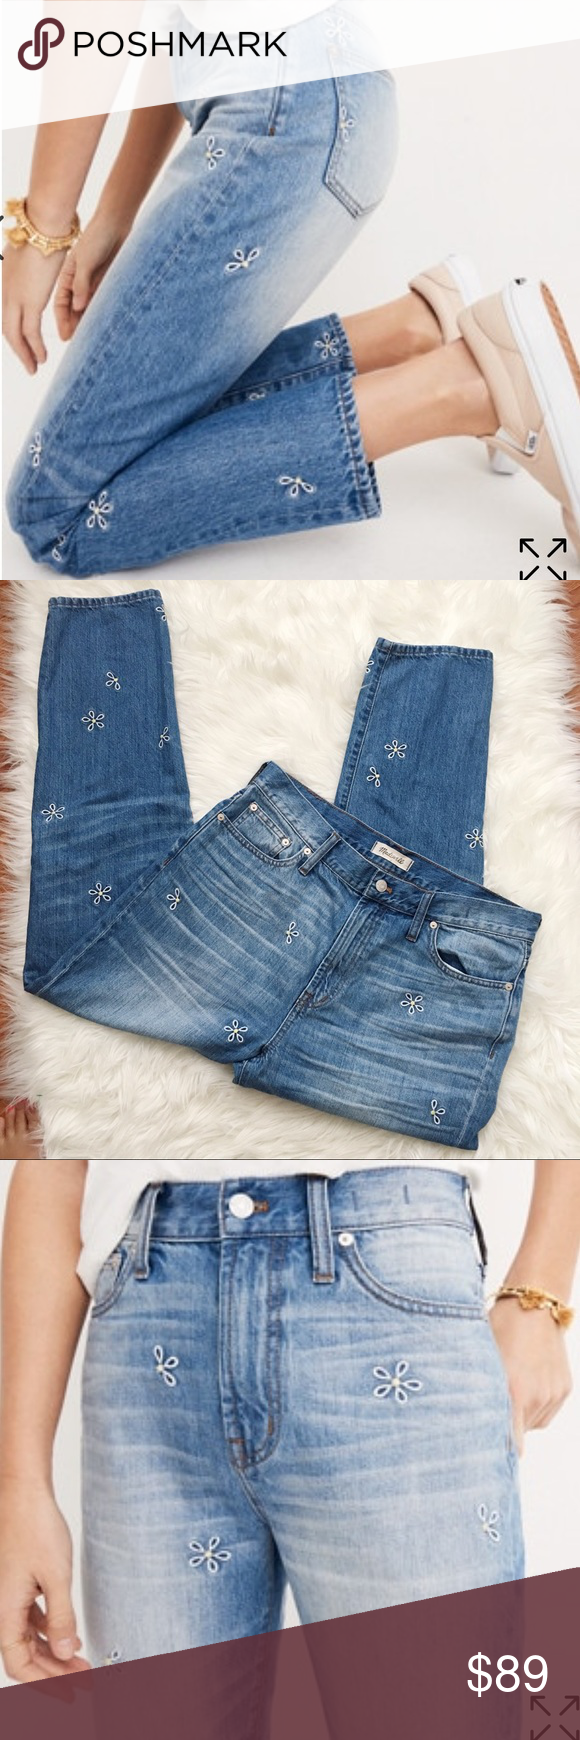 549051471b0c Madewell Perfect Summer Jean- Daisy Embroidered With its waist-accentuating high  rise and tapered legs, our vintage-inspired summer style is here to stay in  ...